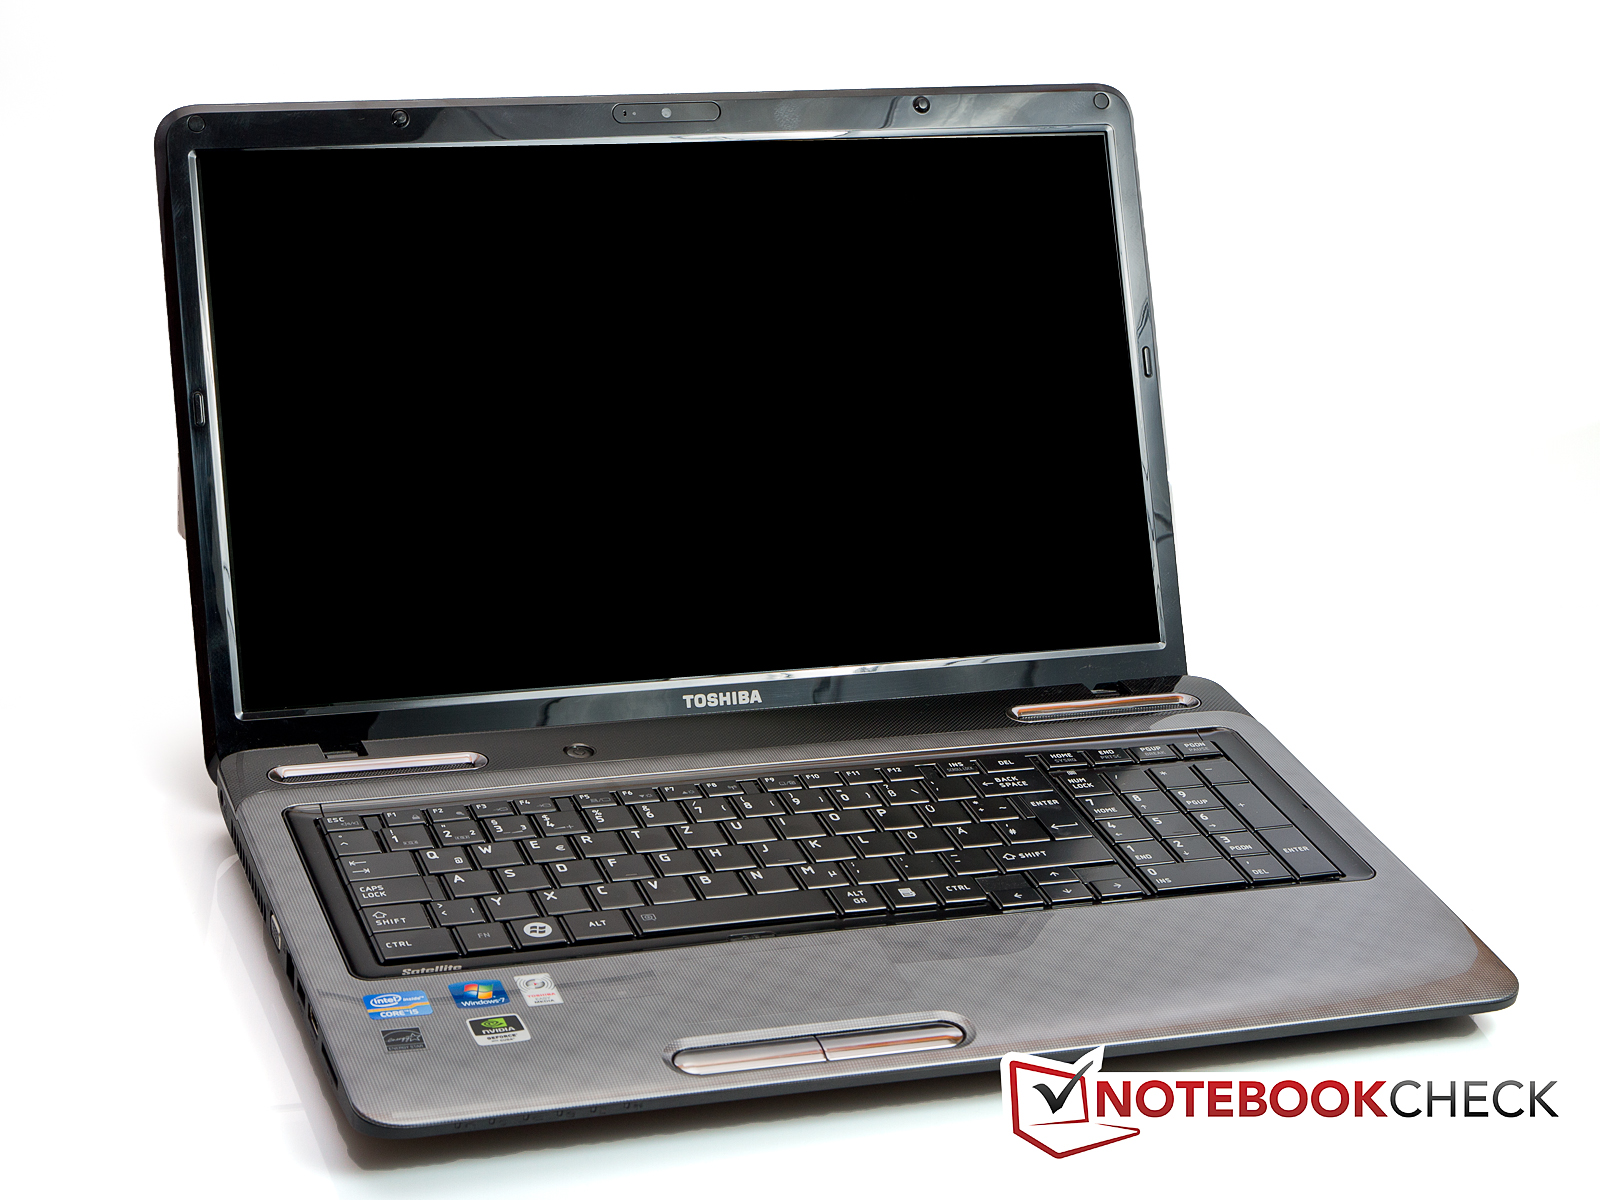 Toshiba Satellite L775 Windows